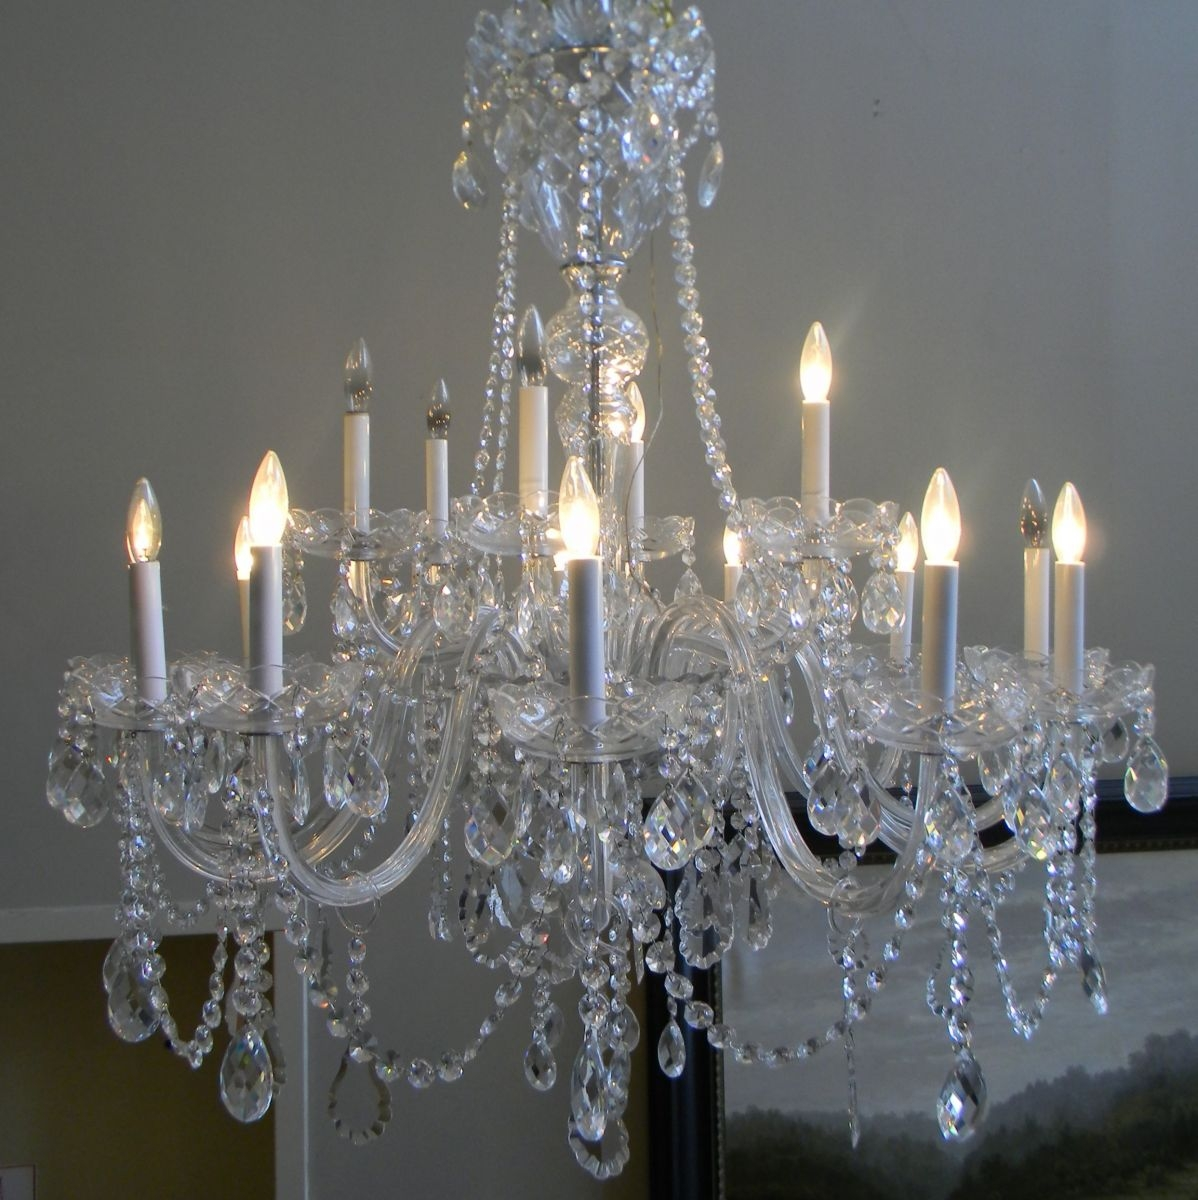 Gas Lamp Antiques Regarding Huge Crystal Chandeliers (Image 5 of 15)